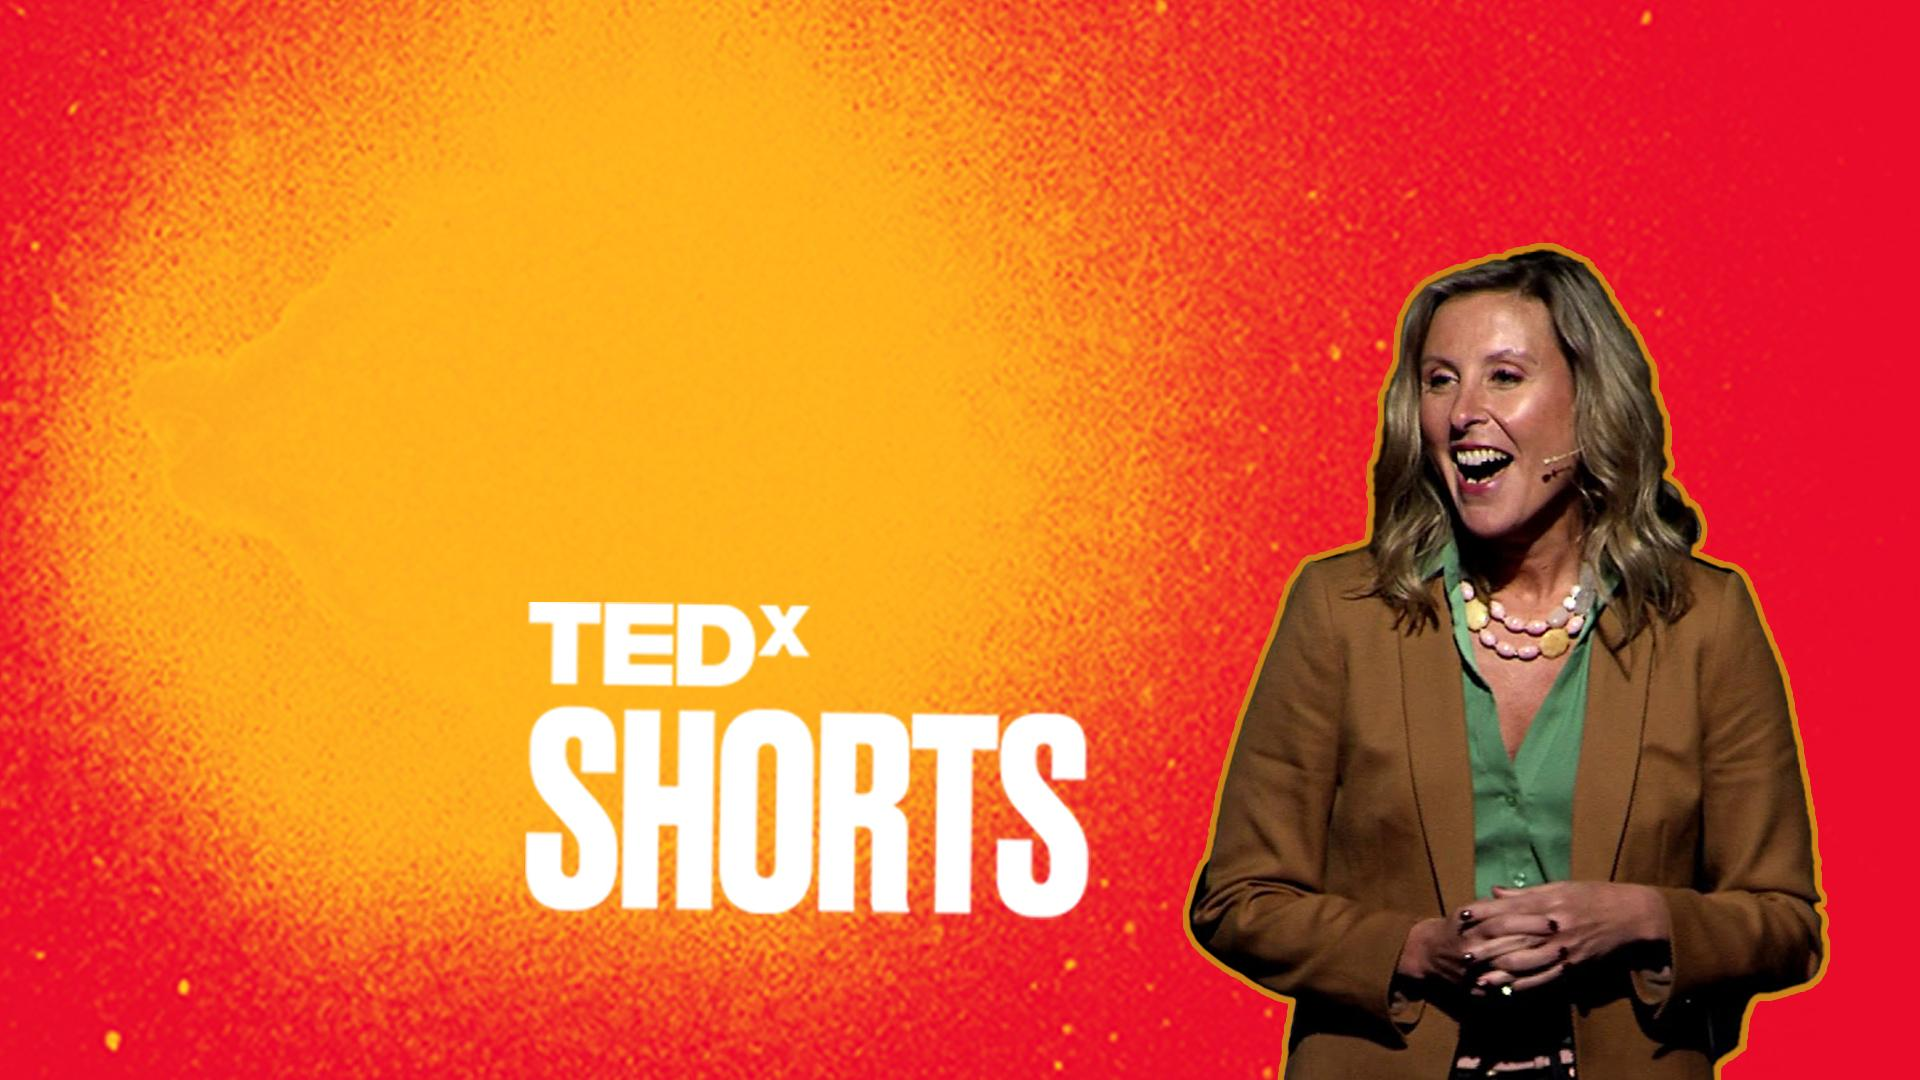 What your sleep patterns say about your relationship | TEDx SHORTS